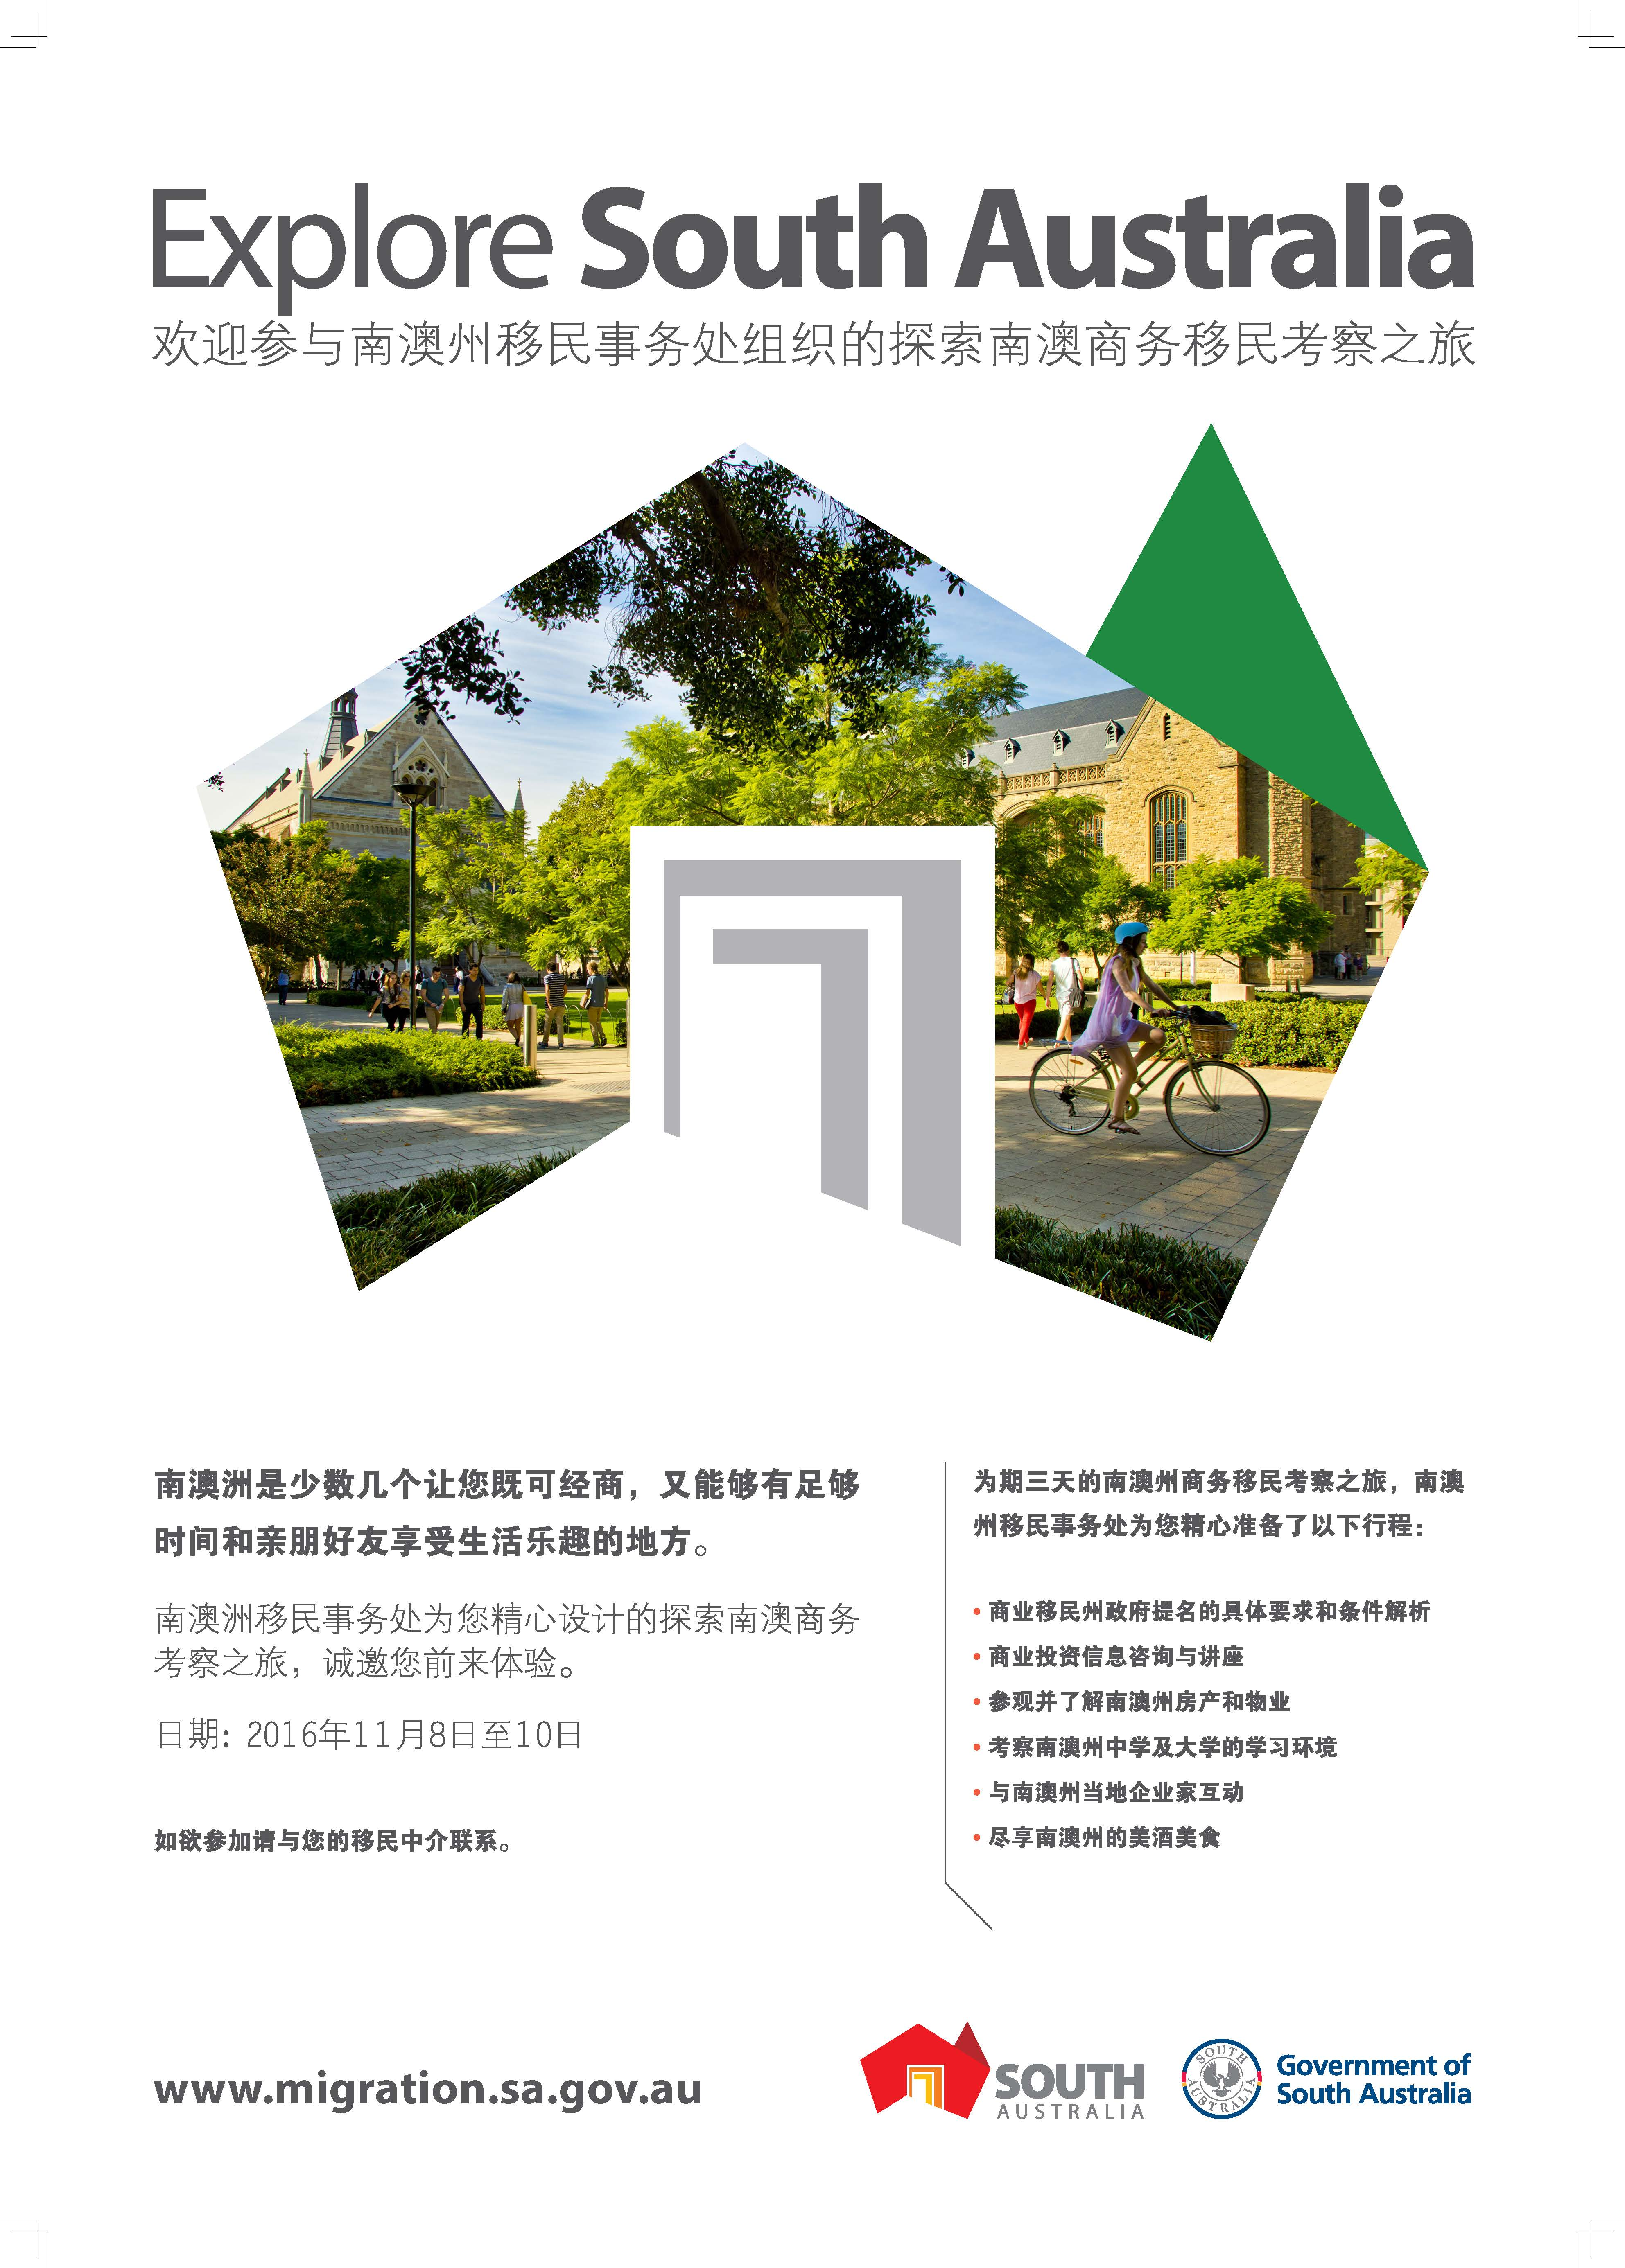 ExploratoryVisitPoster_A2_Chinese